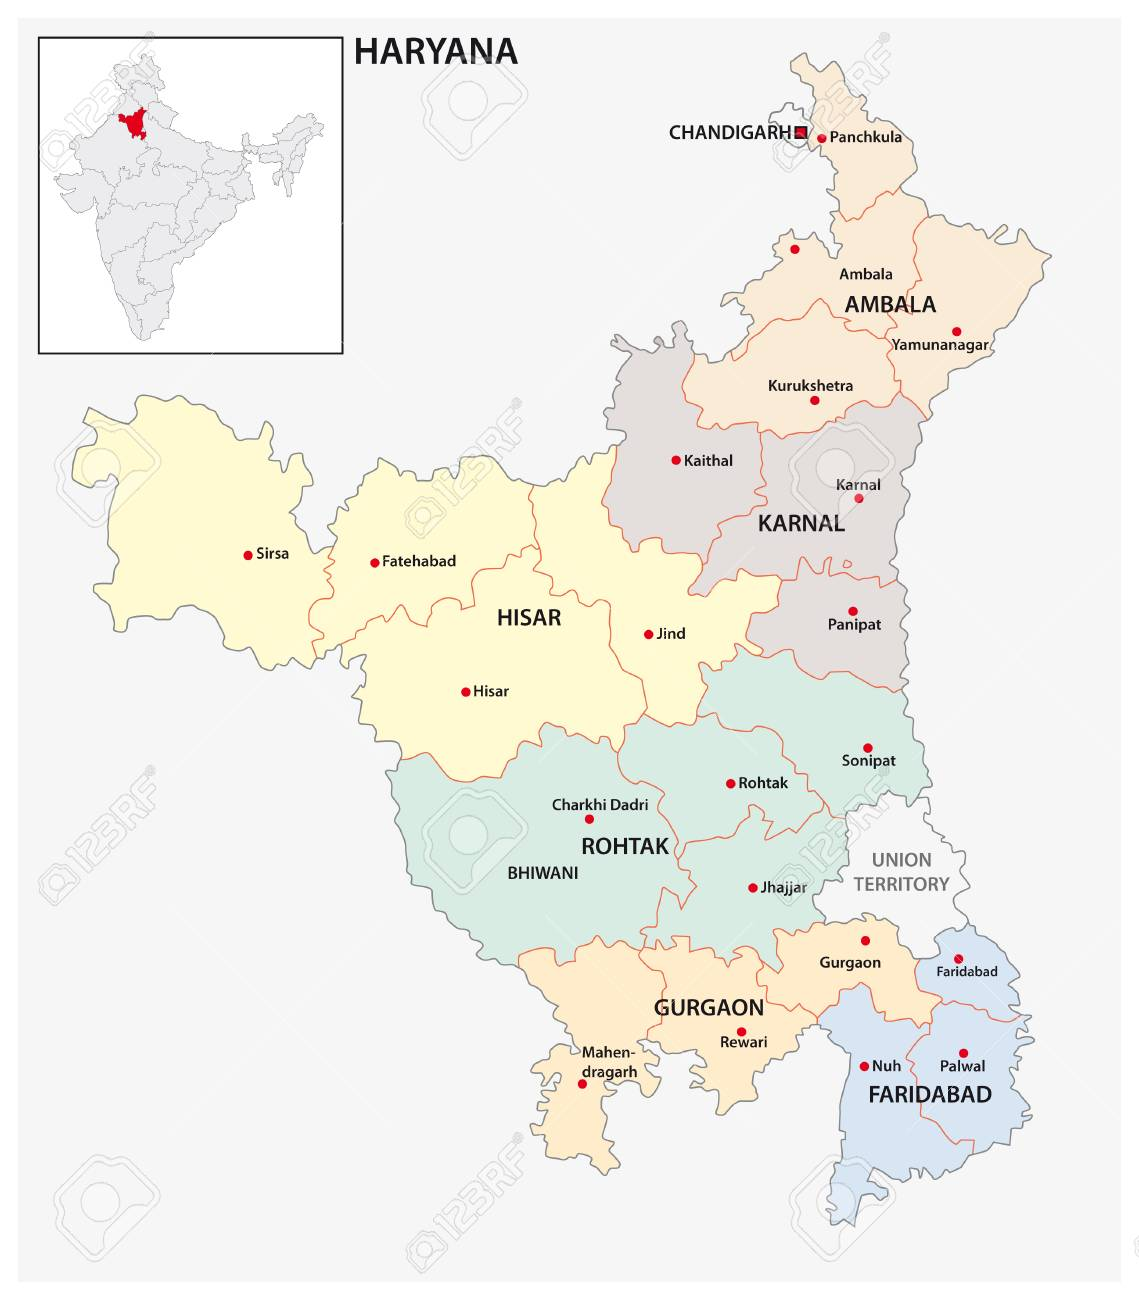 Haryana India Map.Administrative And Political Map Of Indian State Of Haryana